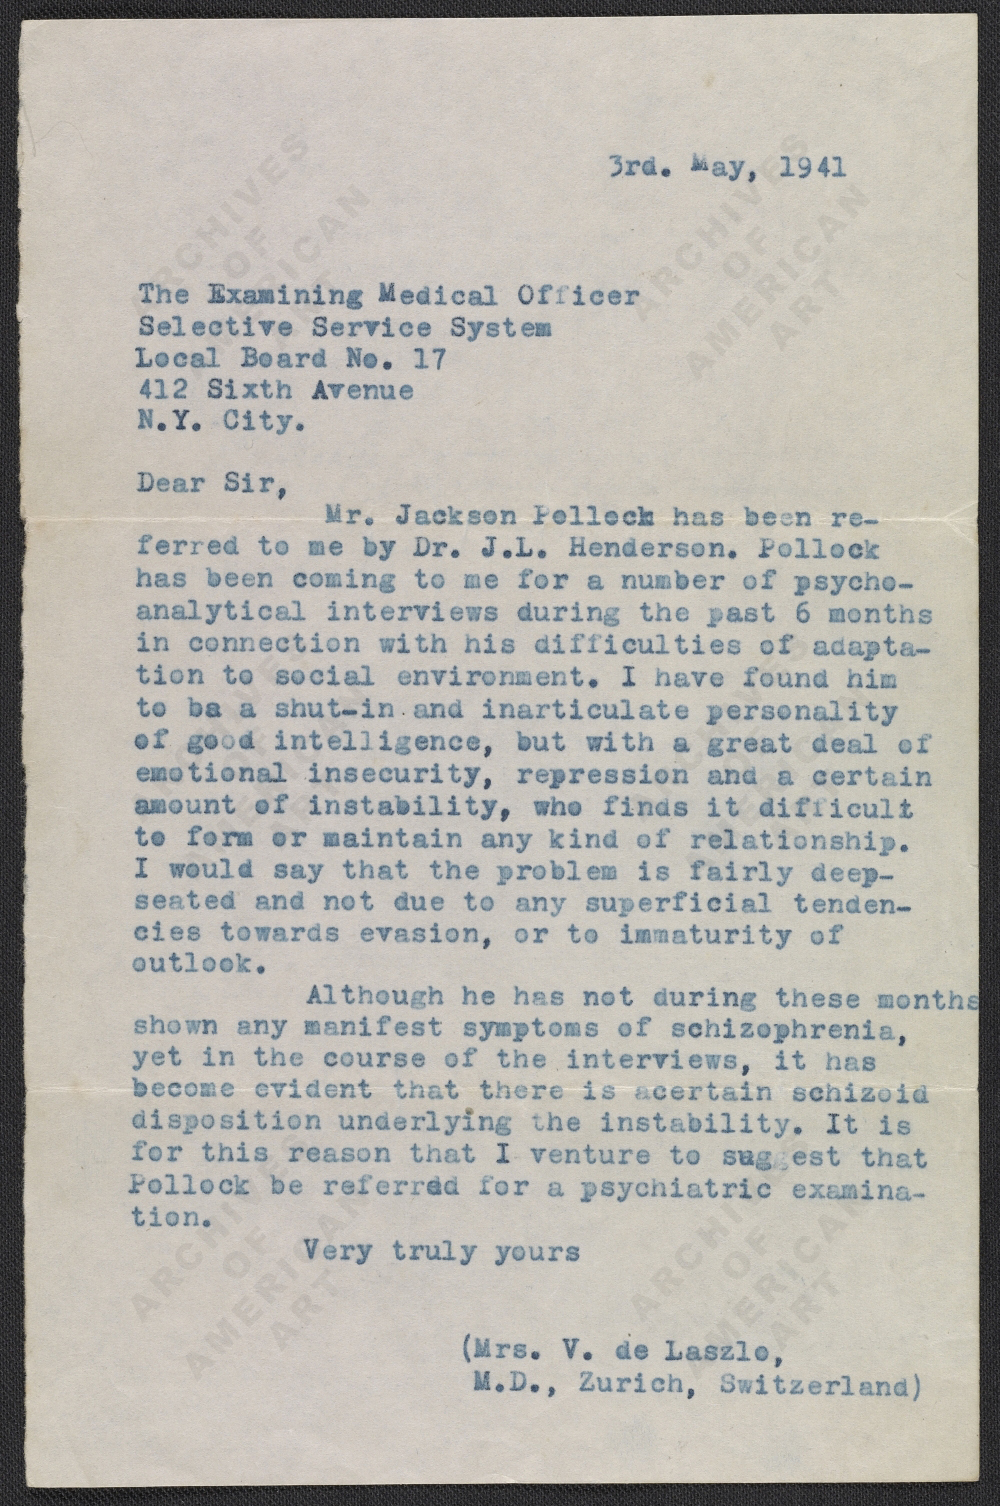 Dr Violet Staub de Laszlo's letter to the Medical Examining Officer of the Selective Service System, May 3rd, 1941